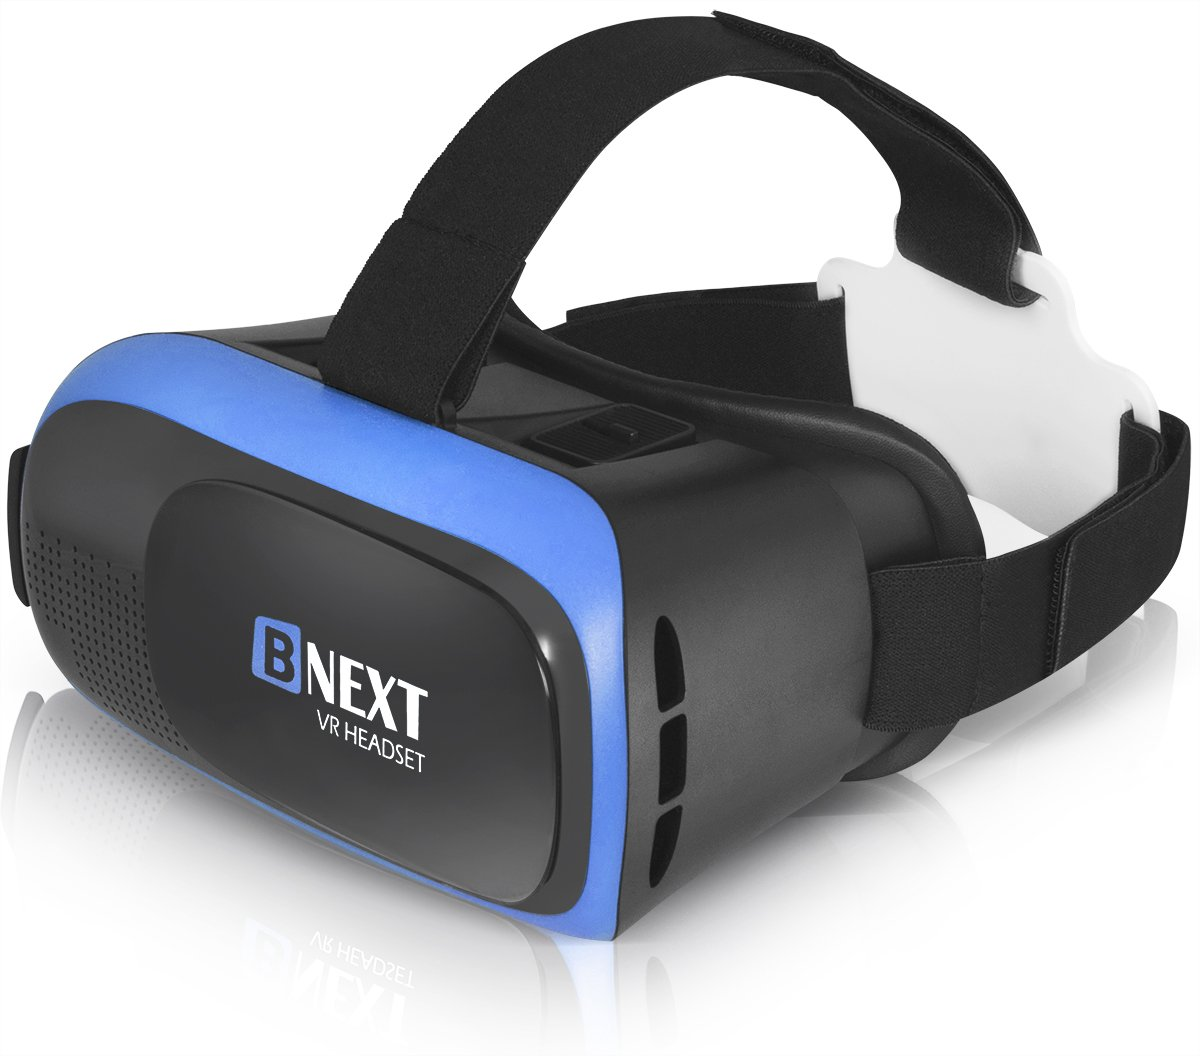 VR Headset for iPhone & Android Phone - Universal Virtual Reality Goggles Ver2.0 - Play Your Best Mobile Games 360 Movies With Soft & Comfortable New 3D VR Glasses | + Adjustable Eye Protection System by BNEXT